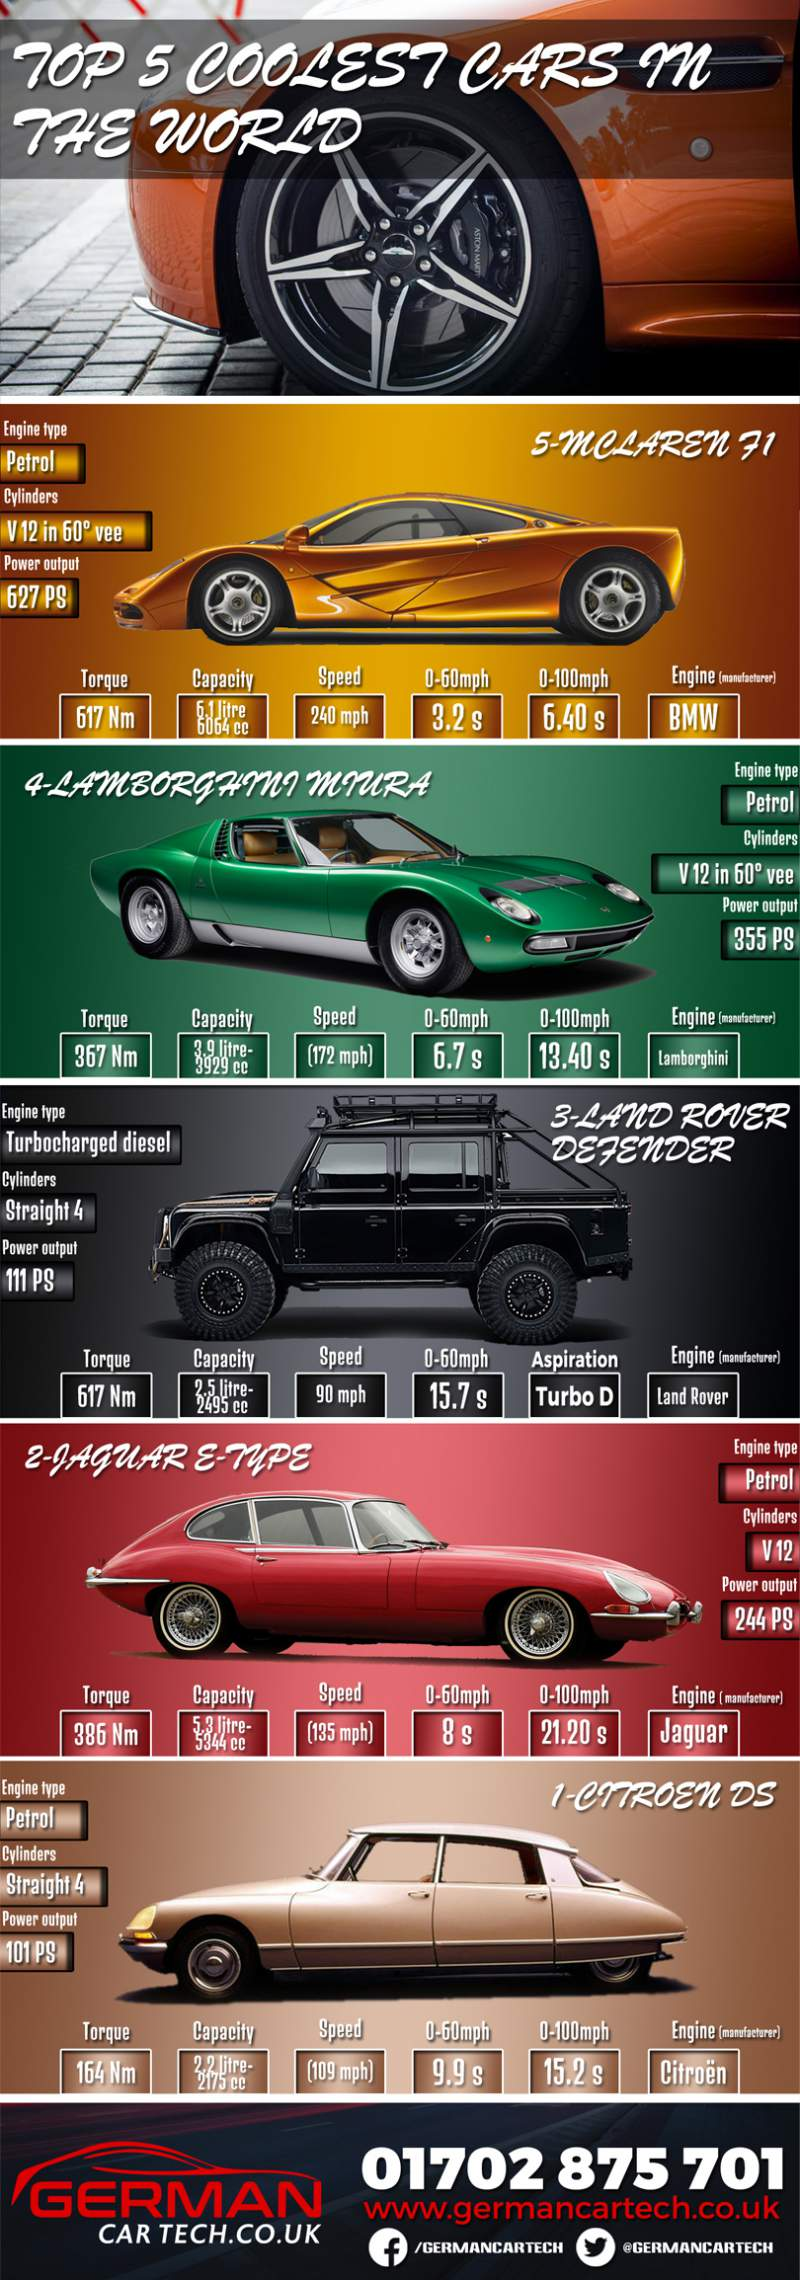 Top 5 coolest cars in the world